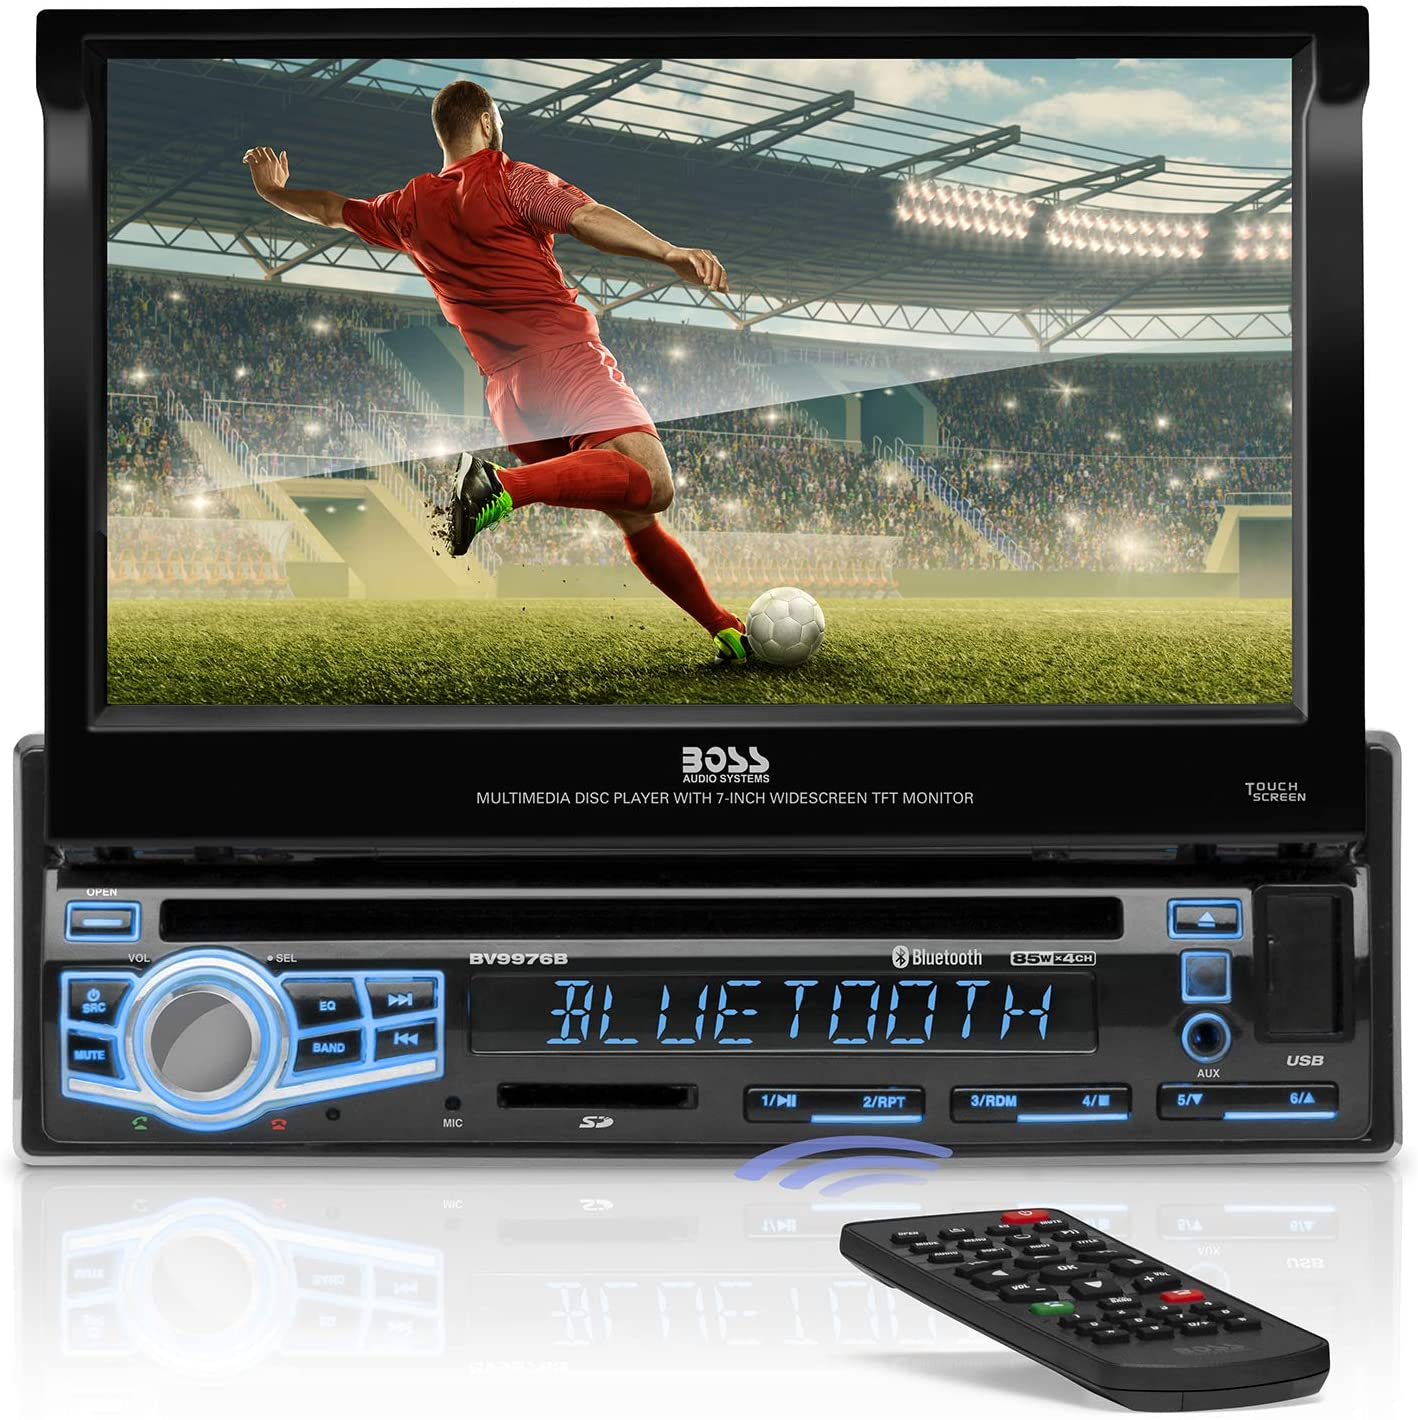 BOSS Audio Max 89% OFF Systems BV9976B Car DVD Single Bluetoot Cheap super special price - Din Player